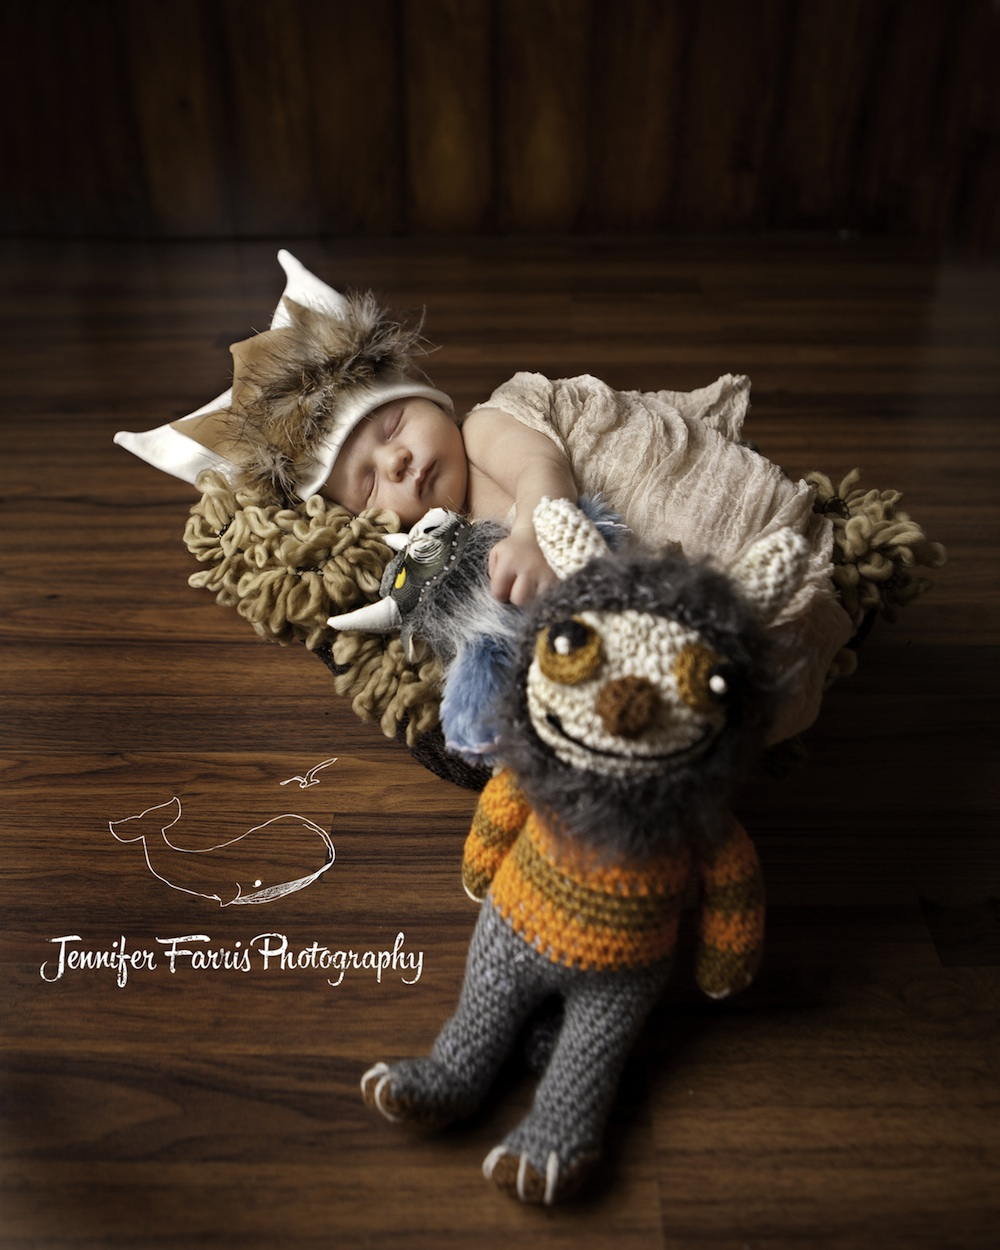 Where the Wild Things Are Themed Newborn Photo Session with Bernard and a crocheted Moishe | Jennifer Farris Photography | as seen on GiggleHearts.com